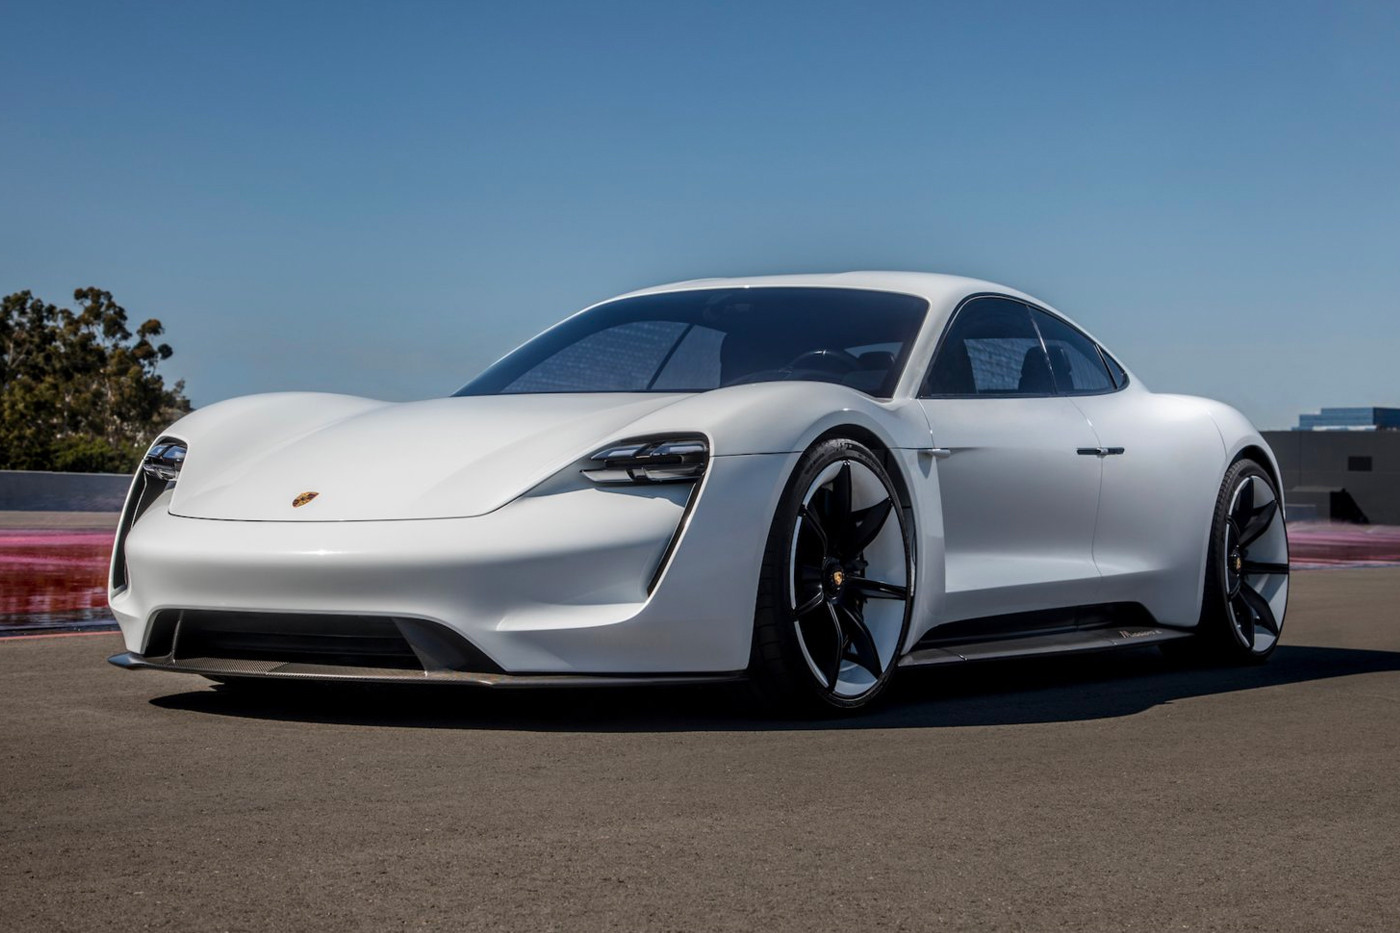 Waiting List For Porscheu0027s First Fully Electric Tesla Rival Grows